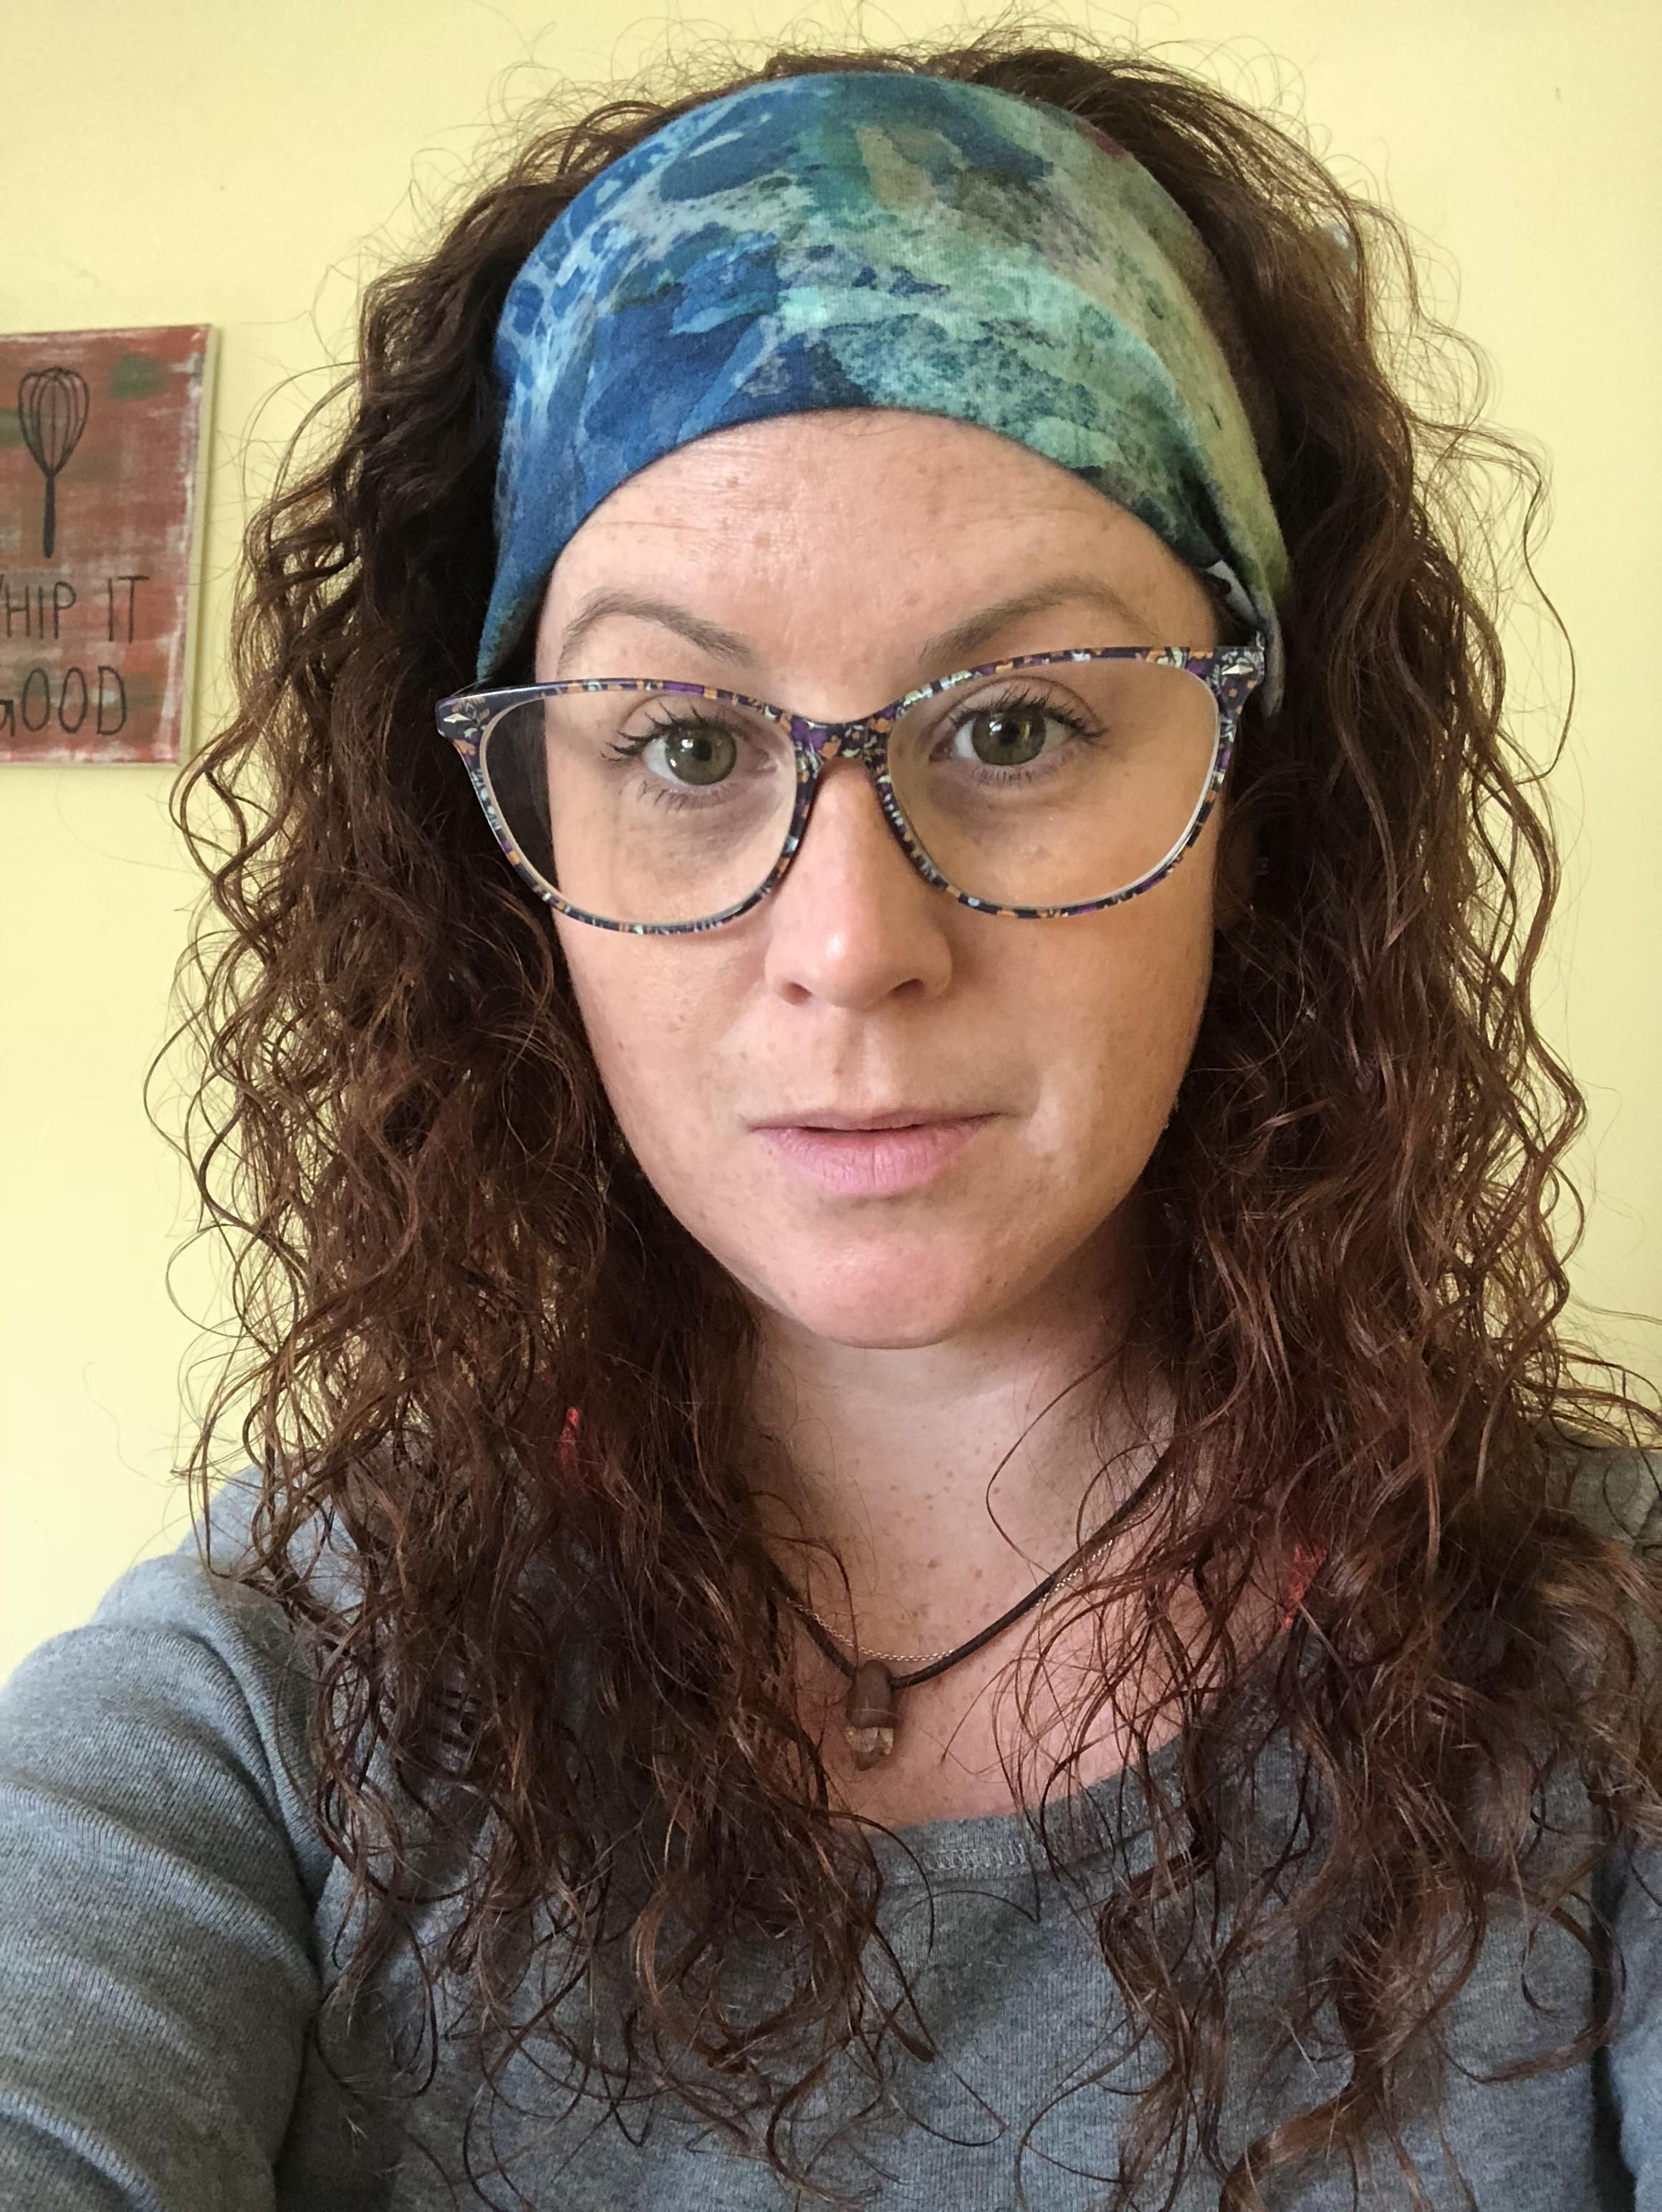 IMO the best accessory for curly hair: the Buff headband. This is